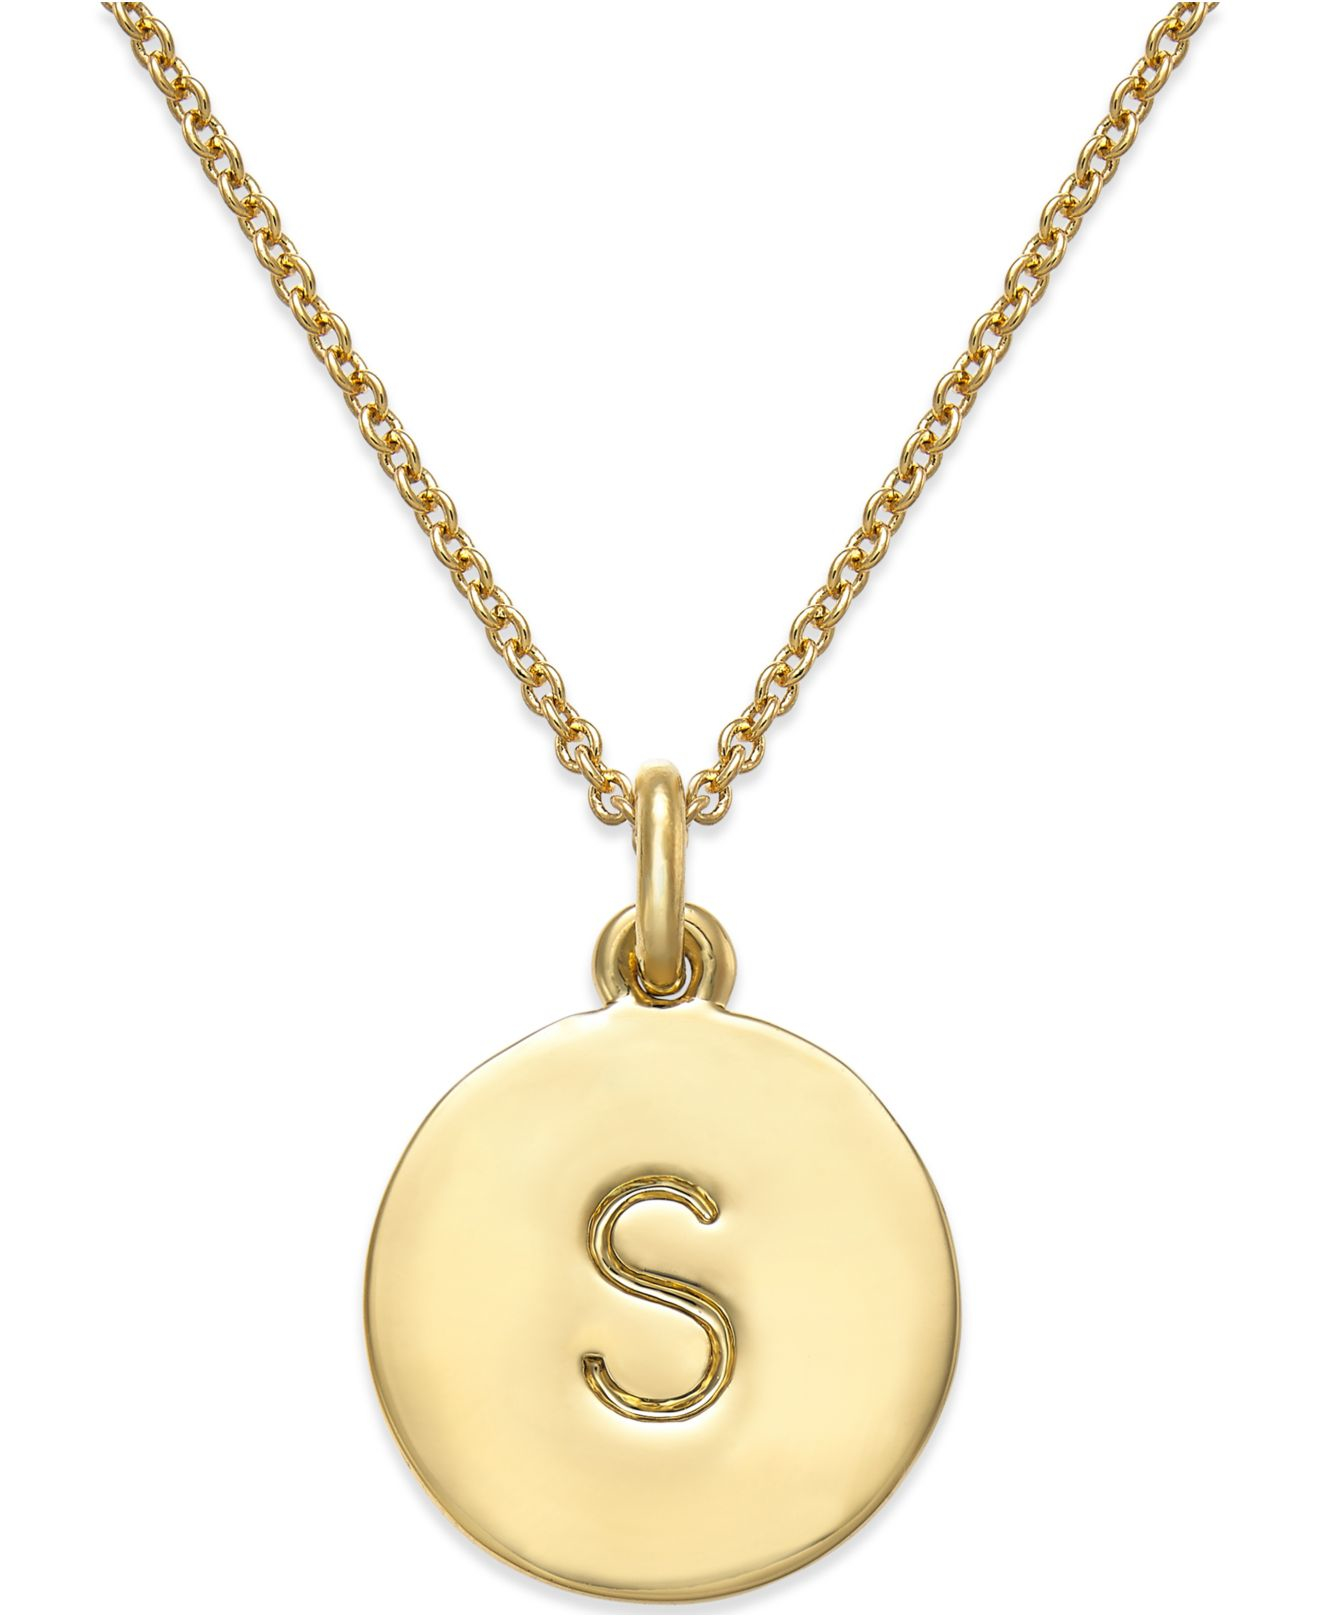 kate spade 12k gold plated initials pendant necklace in